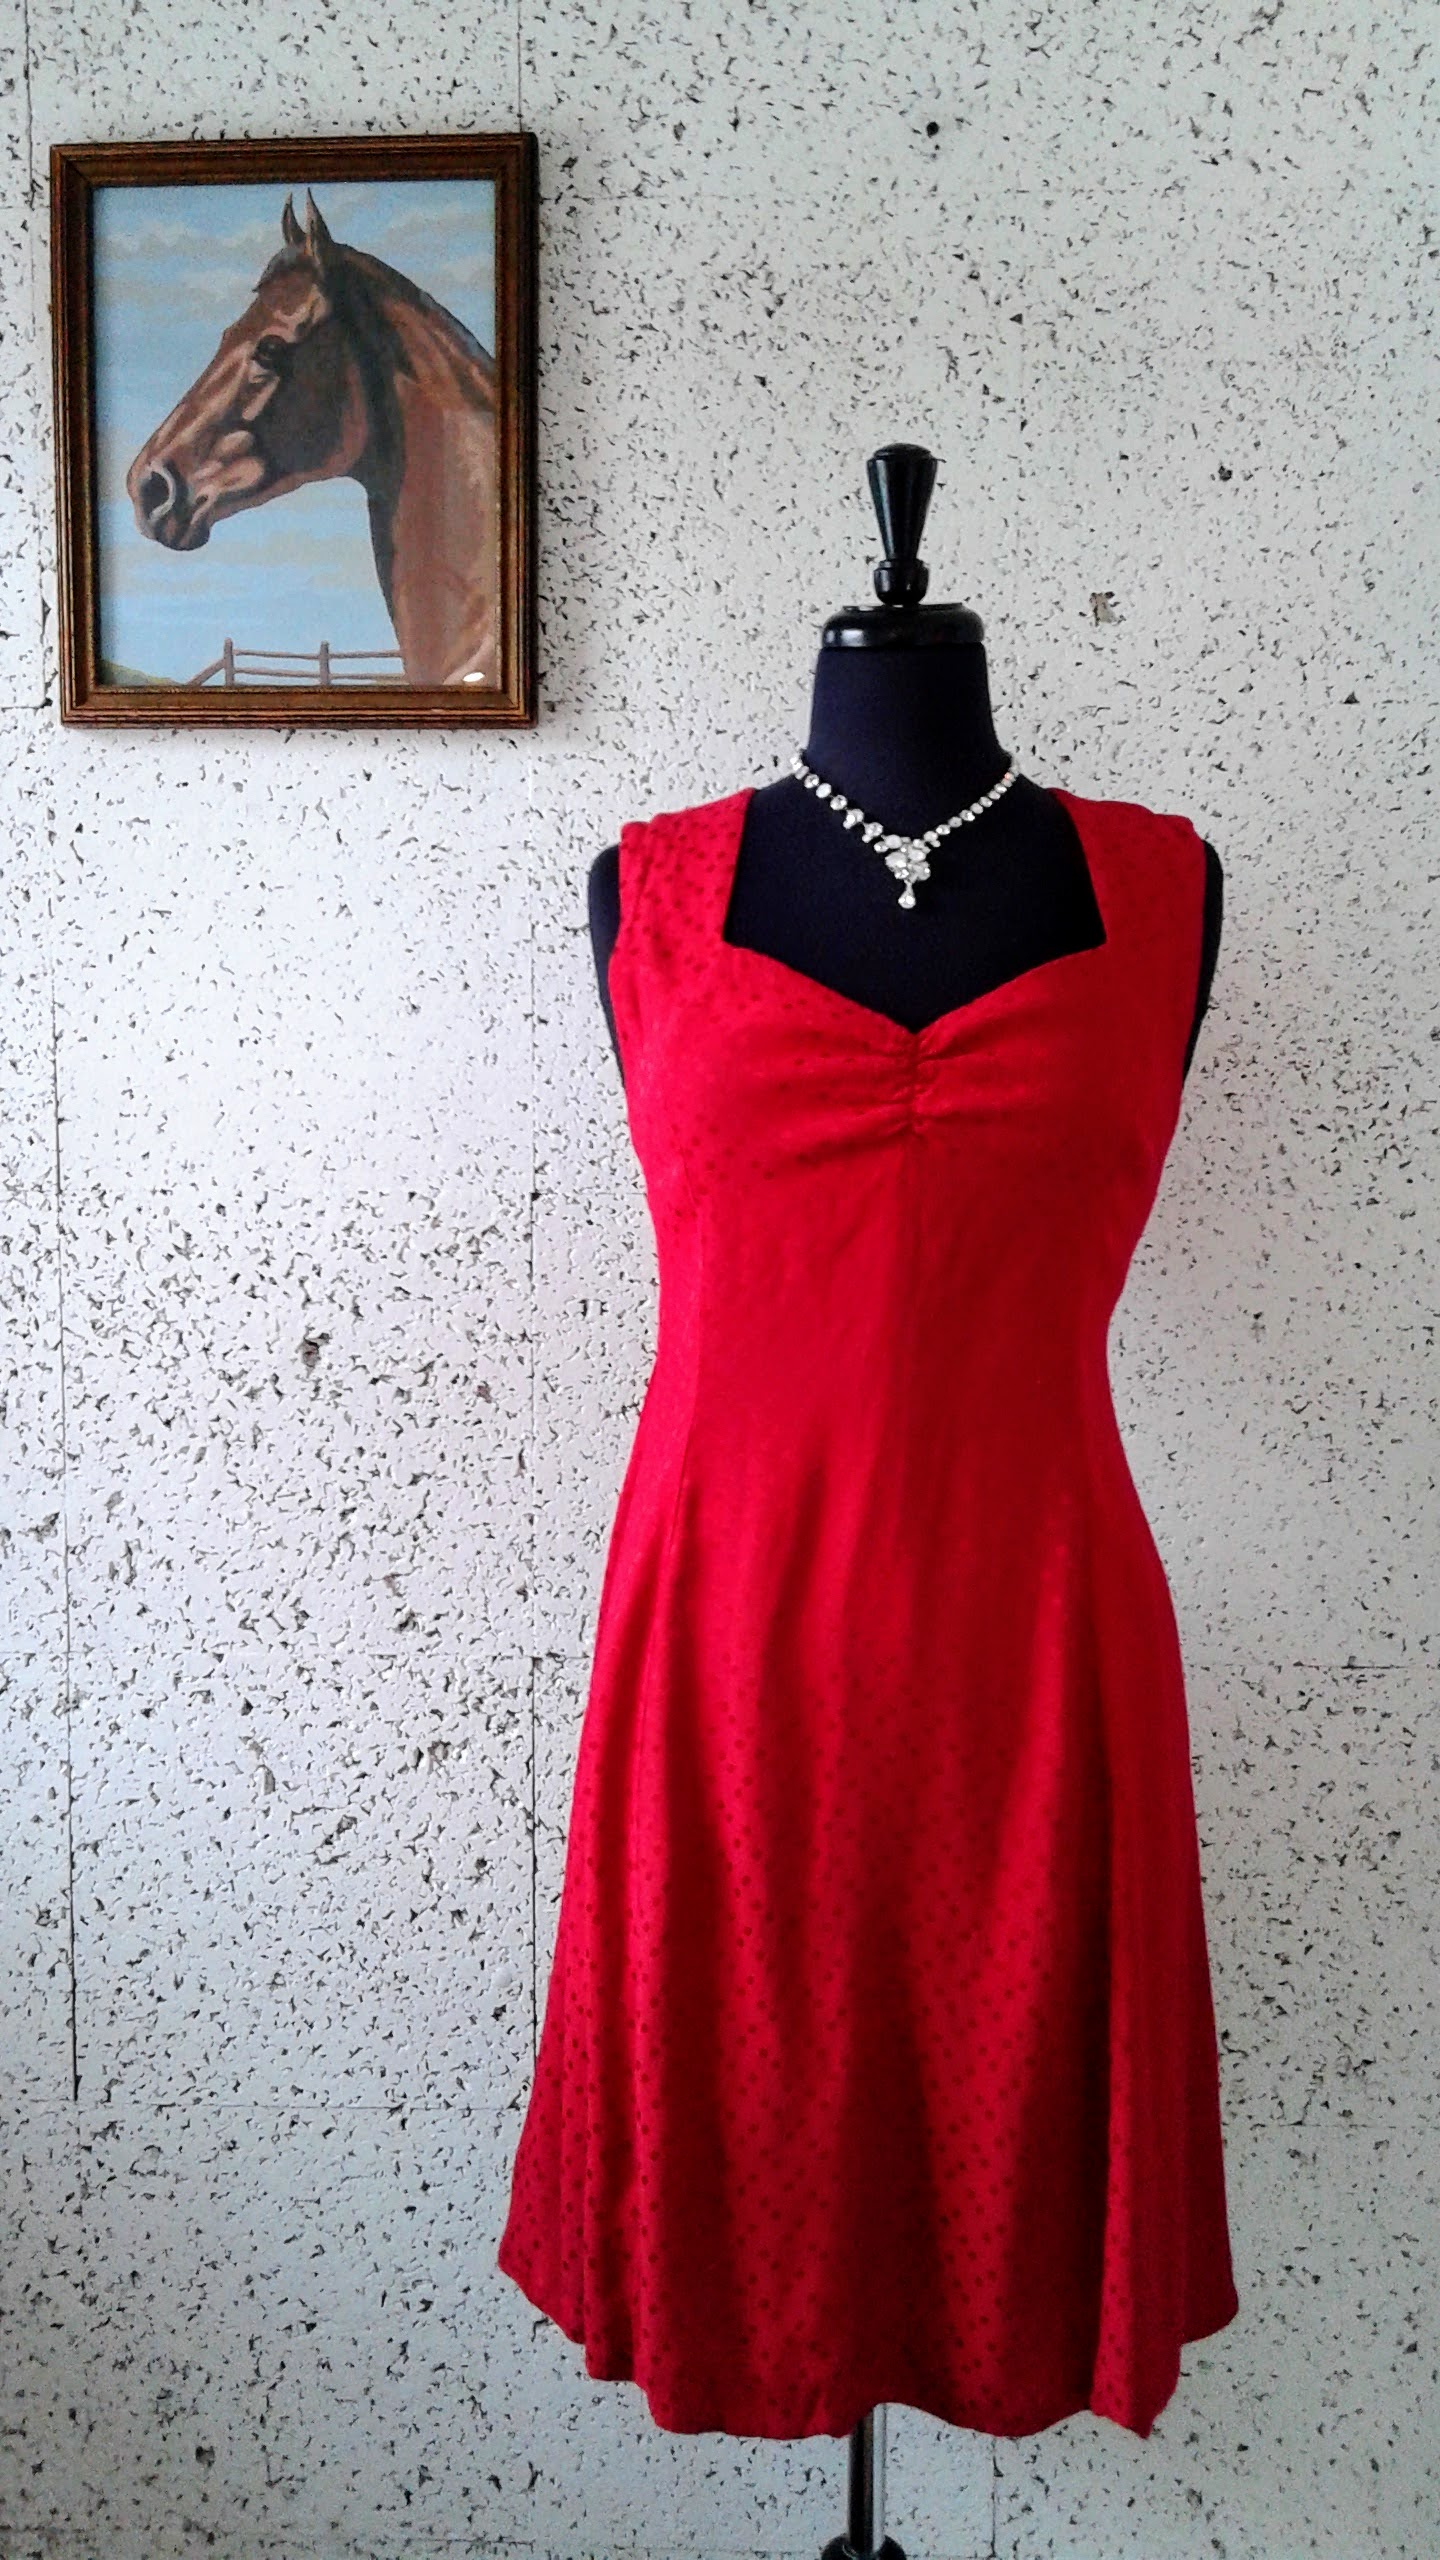 Maple By Some Old Rubies dress; Size 6, $36